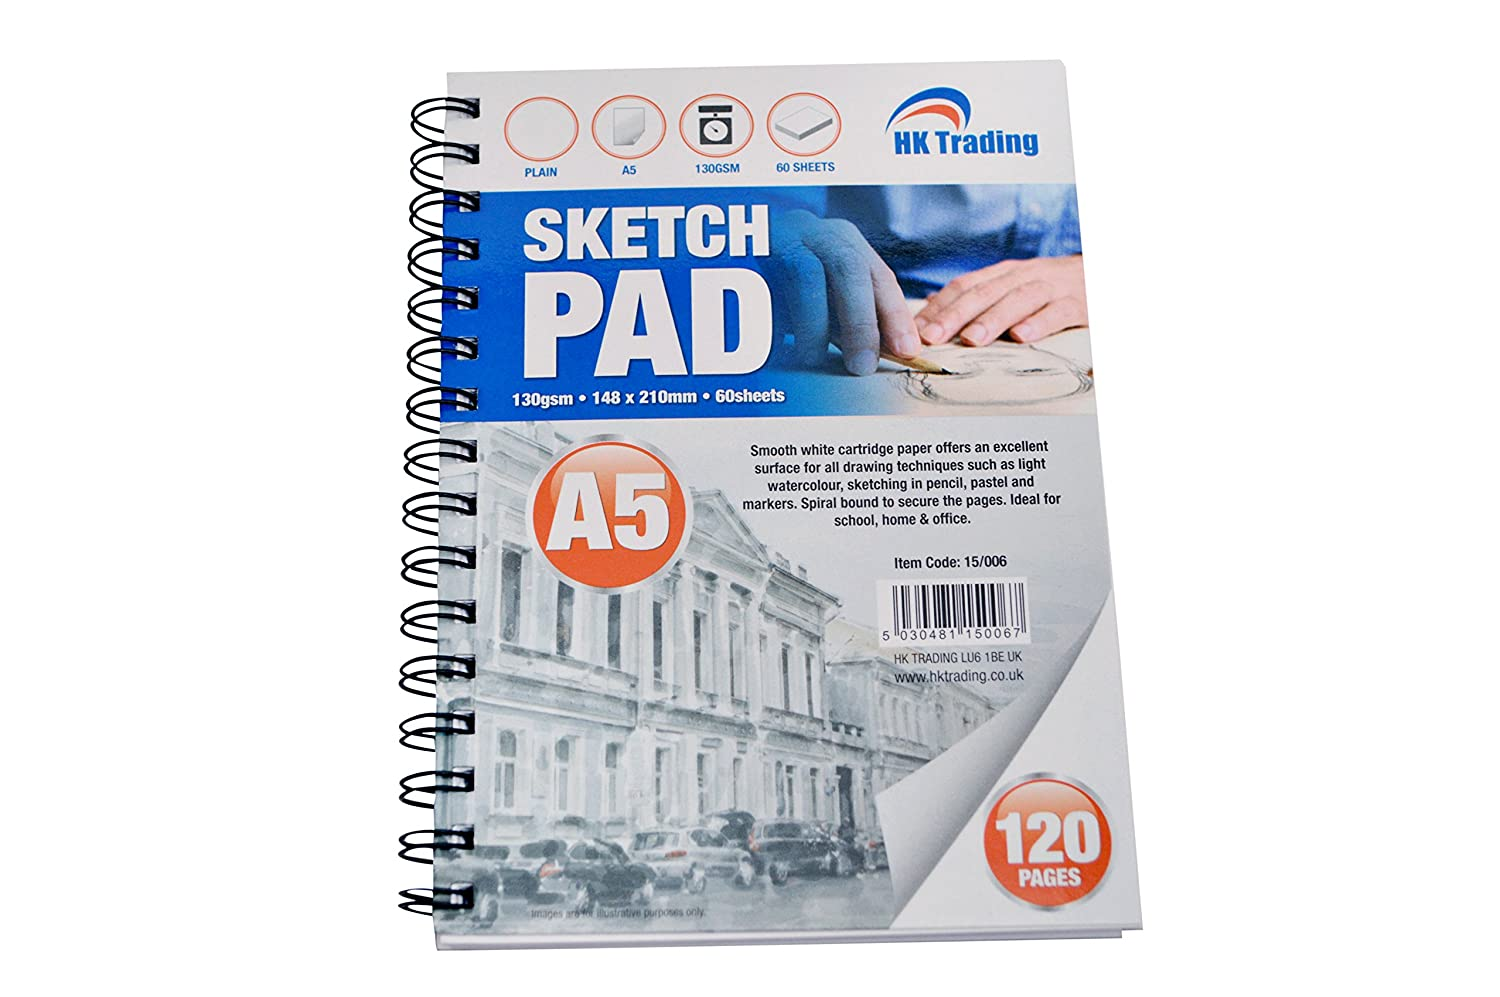 A5 DRAWING SKETCH PAD - 130gsm 60 sheets perforated thick plain cartridge paper - FREE DELIVERY HK TRADING